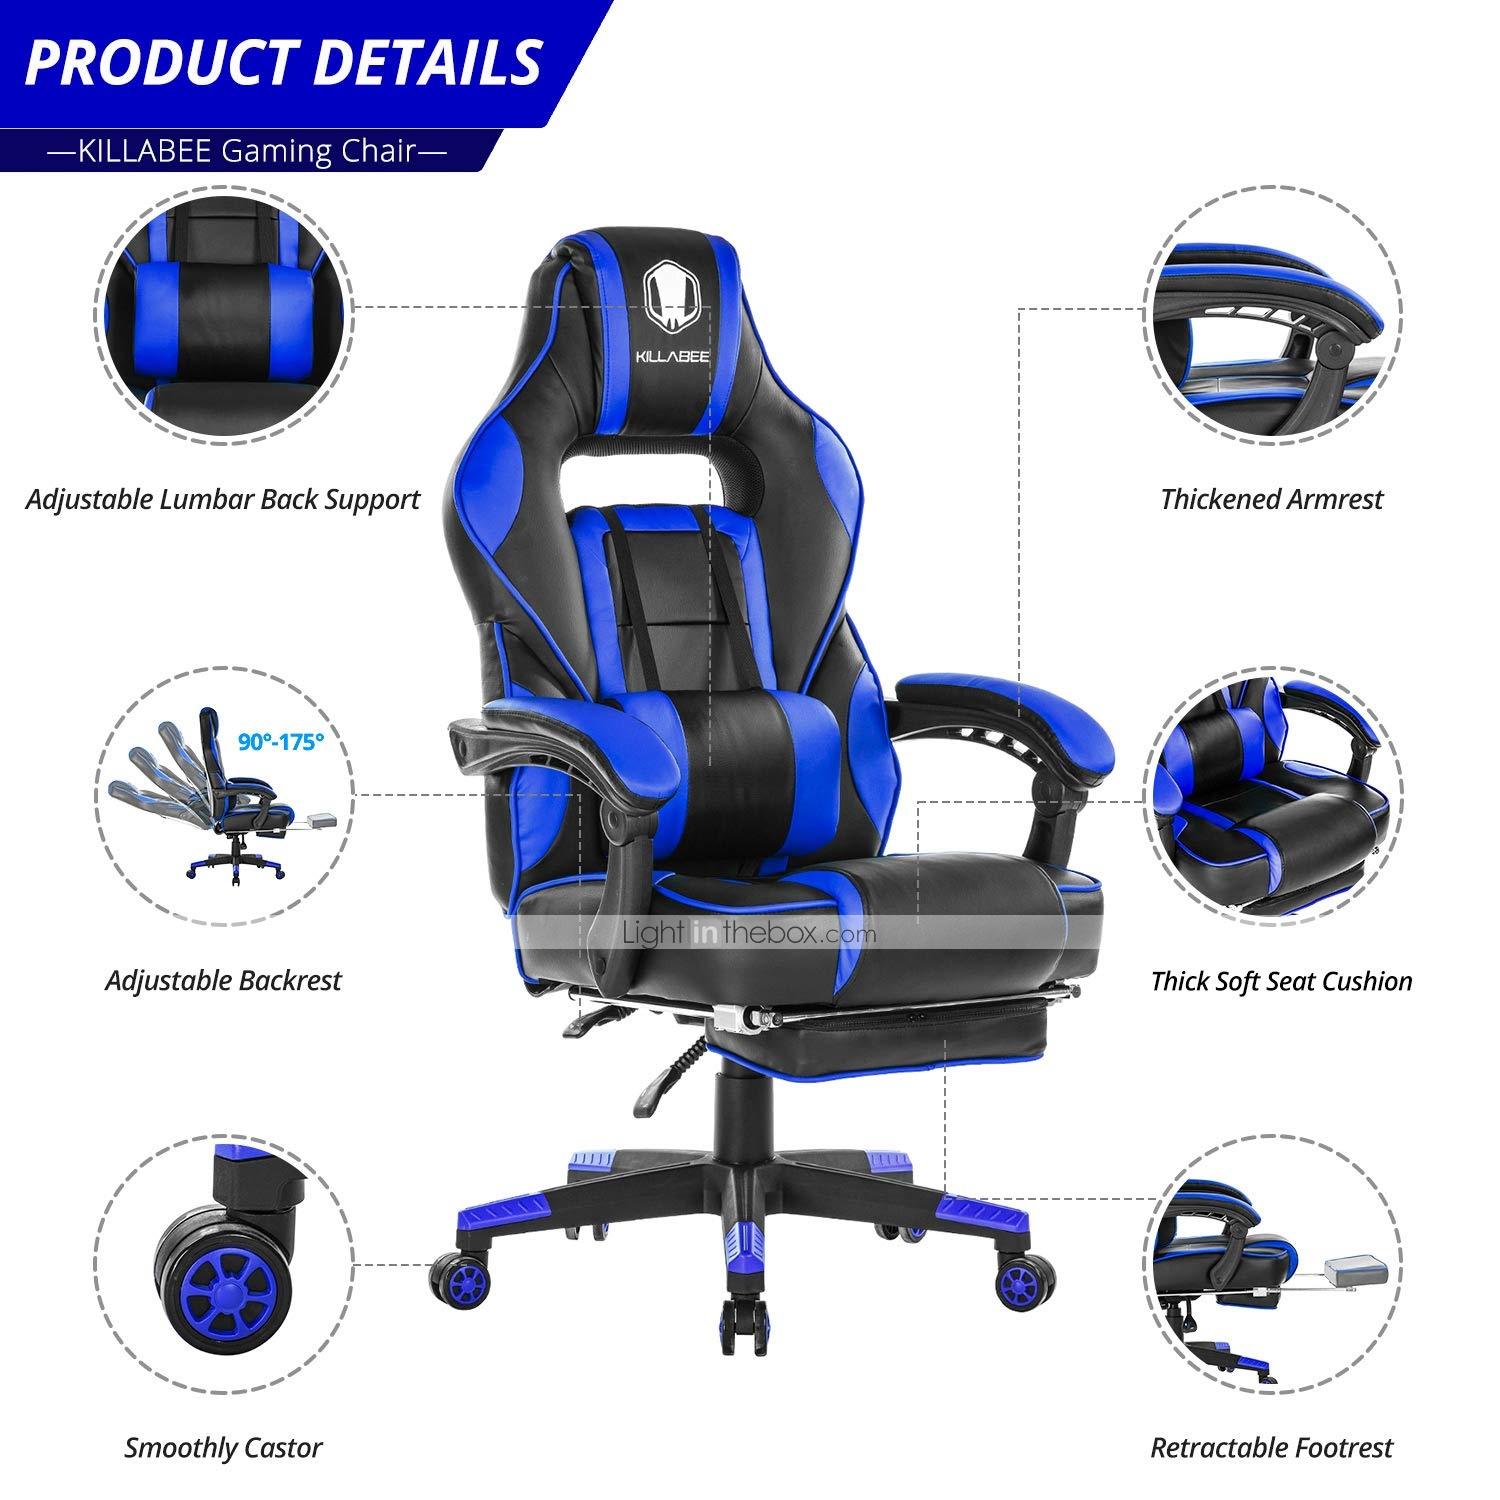 Outstanding Killabee Reclining Memory Foam Racing Gaming Chair Unemploymentrelief Wooden Chair Designs For Living Room Unemploymentrelieforg